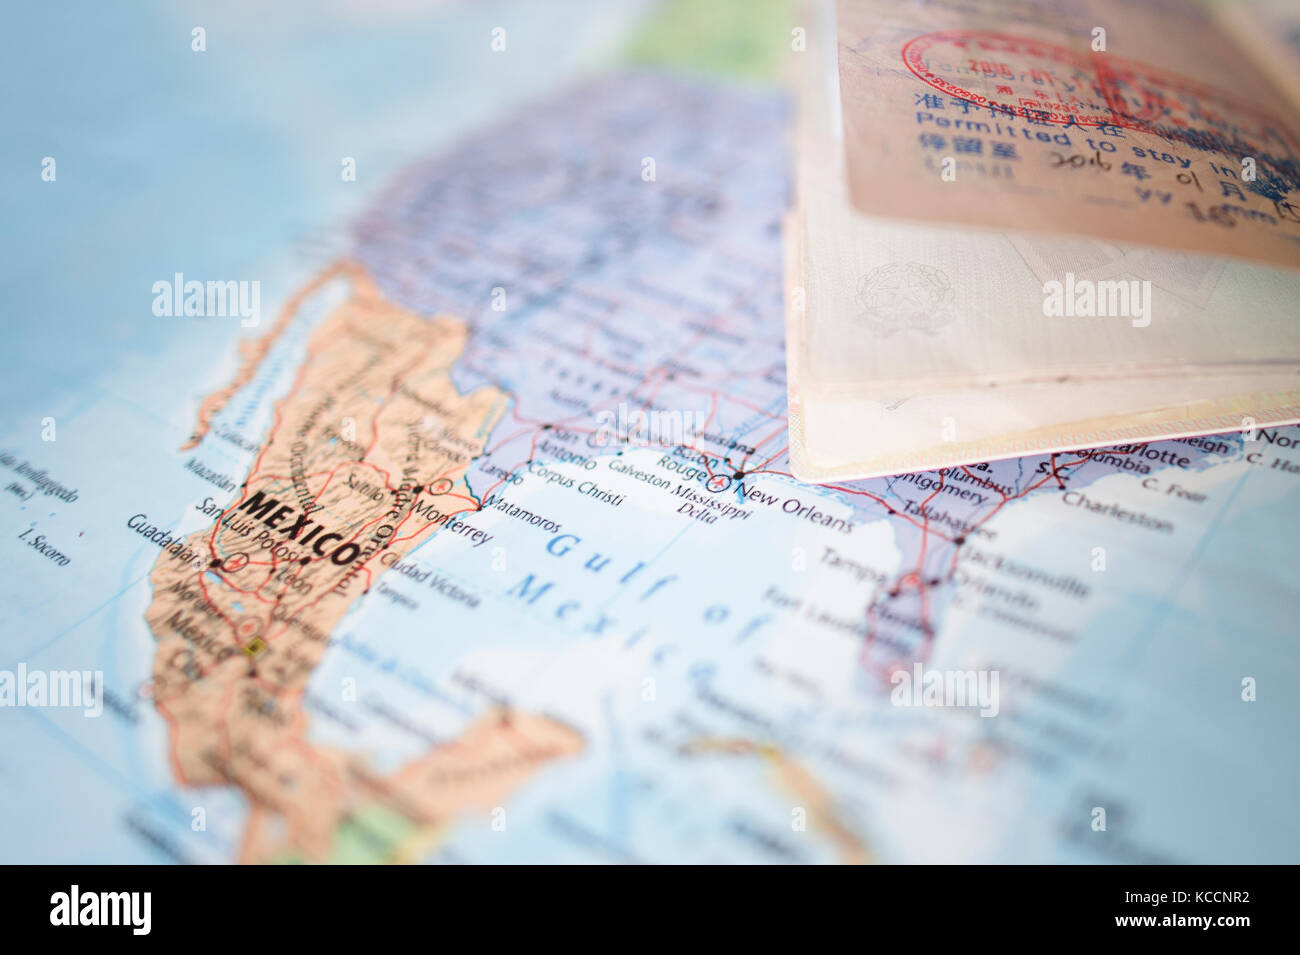 selective focus a blurred passport with entry stamps is on a geographical map of the world the map shows the united states an mexico